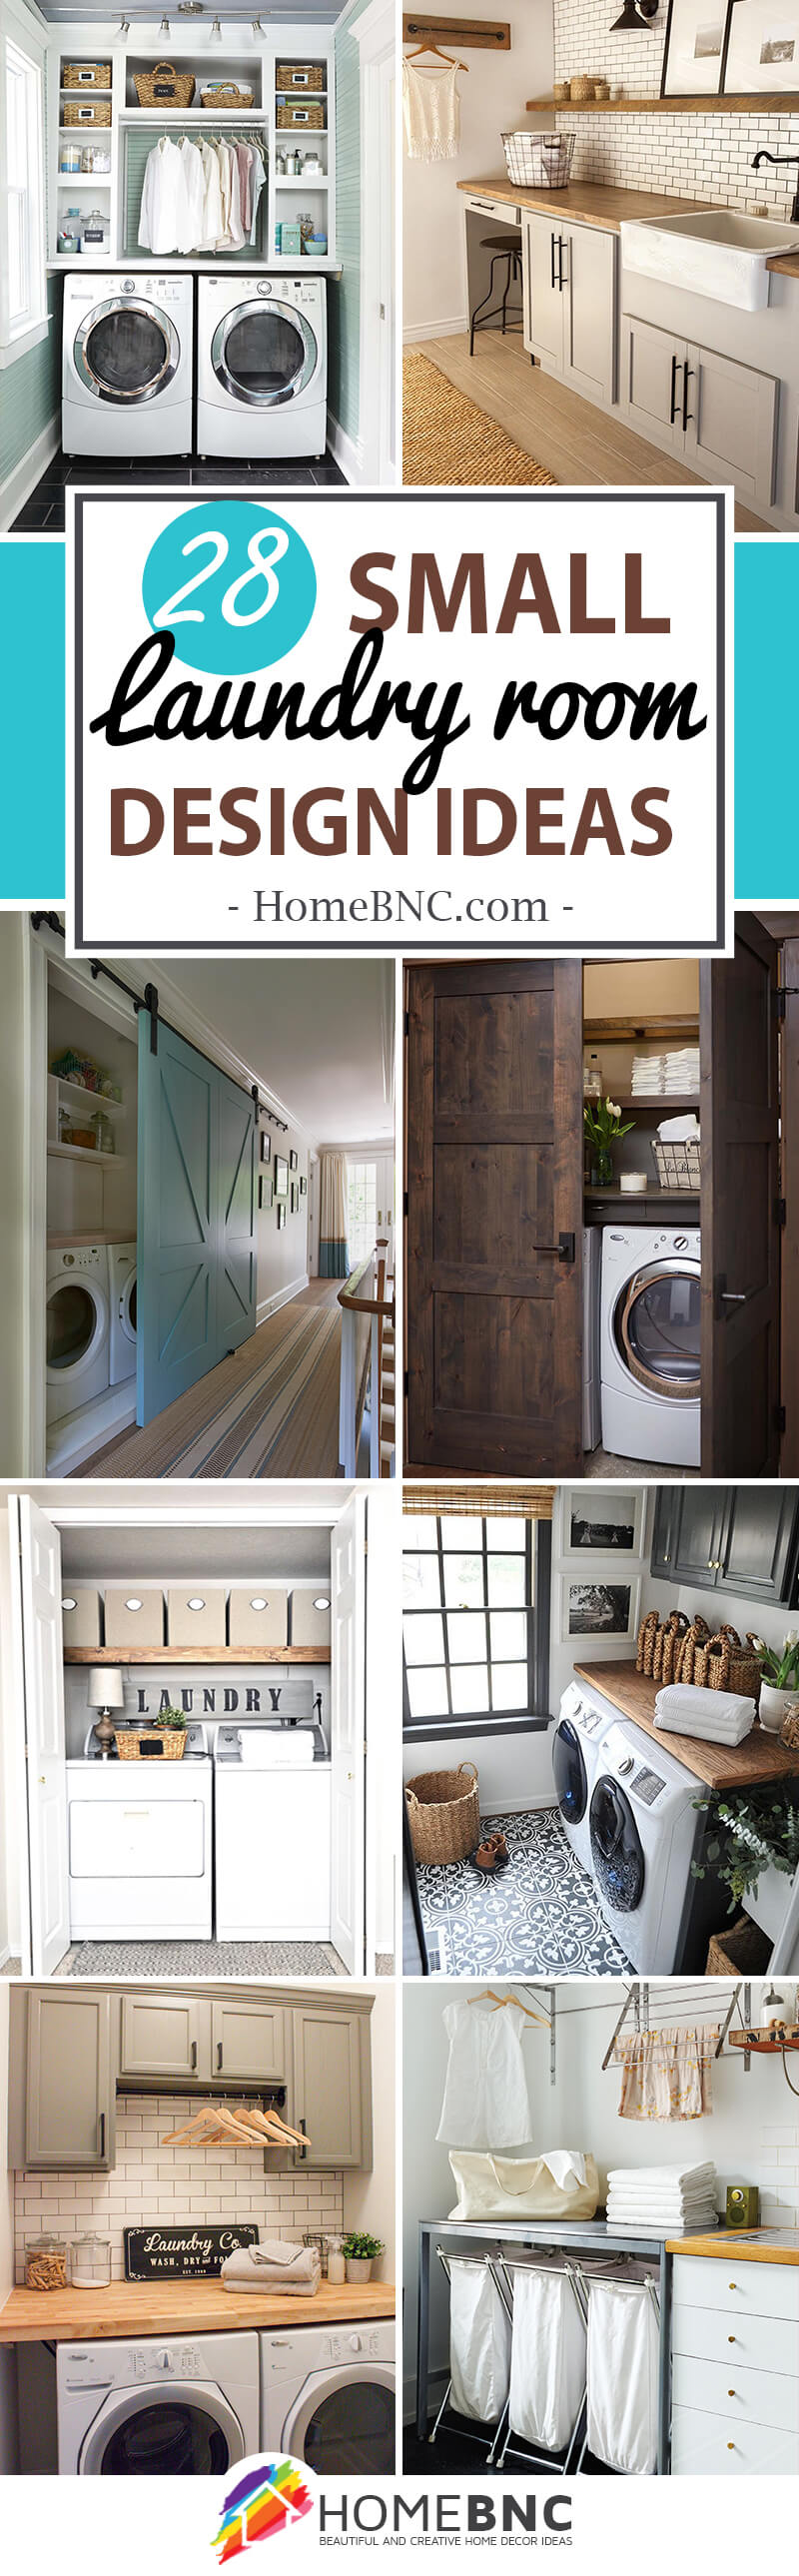 28 Best Small Laundry Room Design Ideas for 2020 on Laundry Decorating Ideas  id=88794